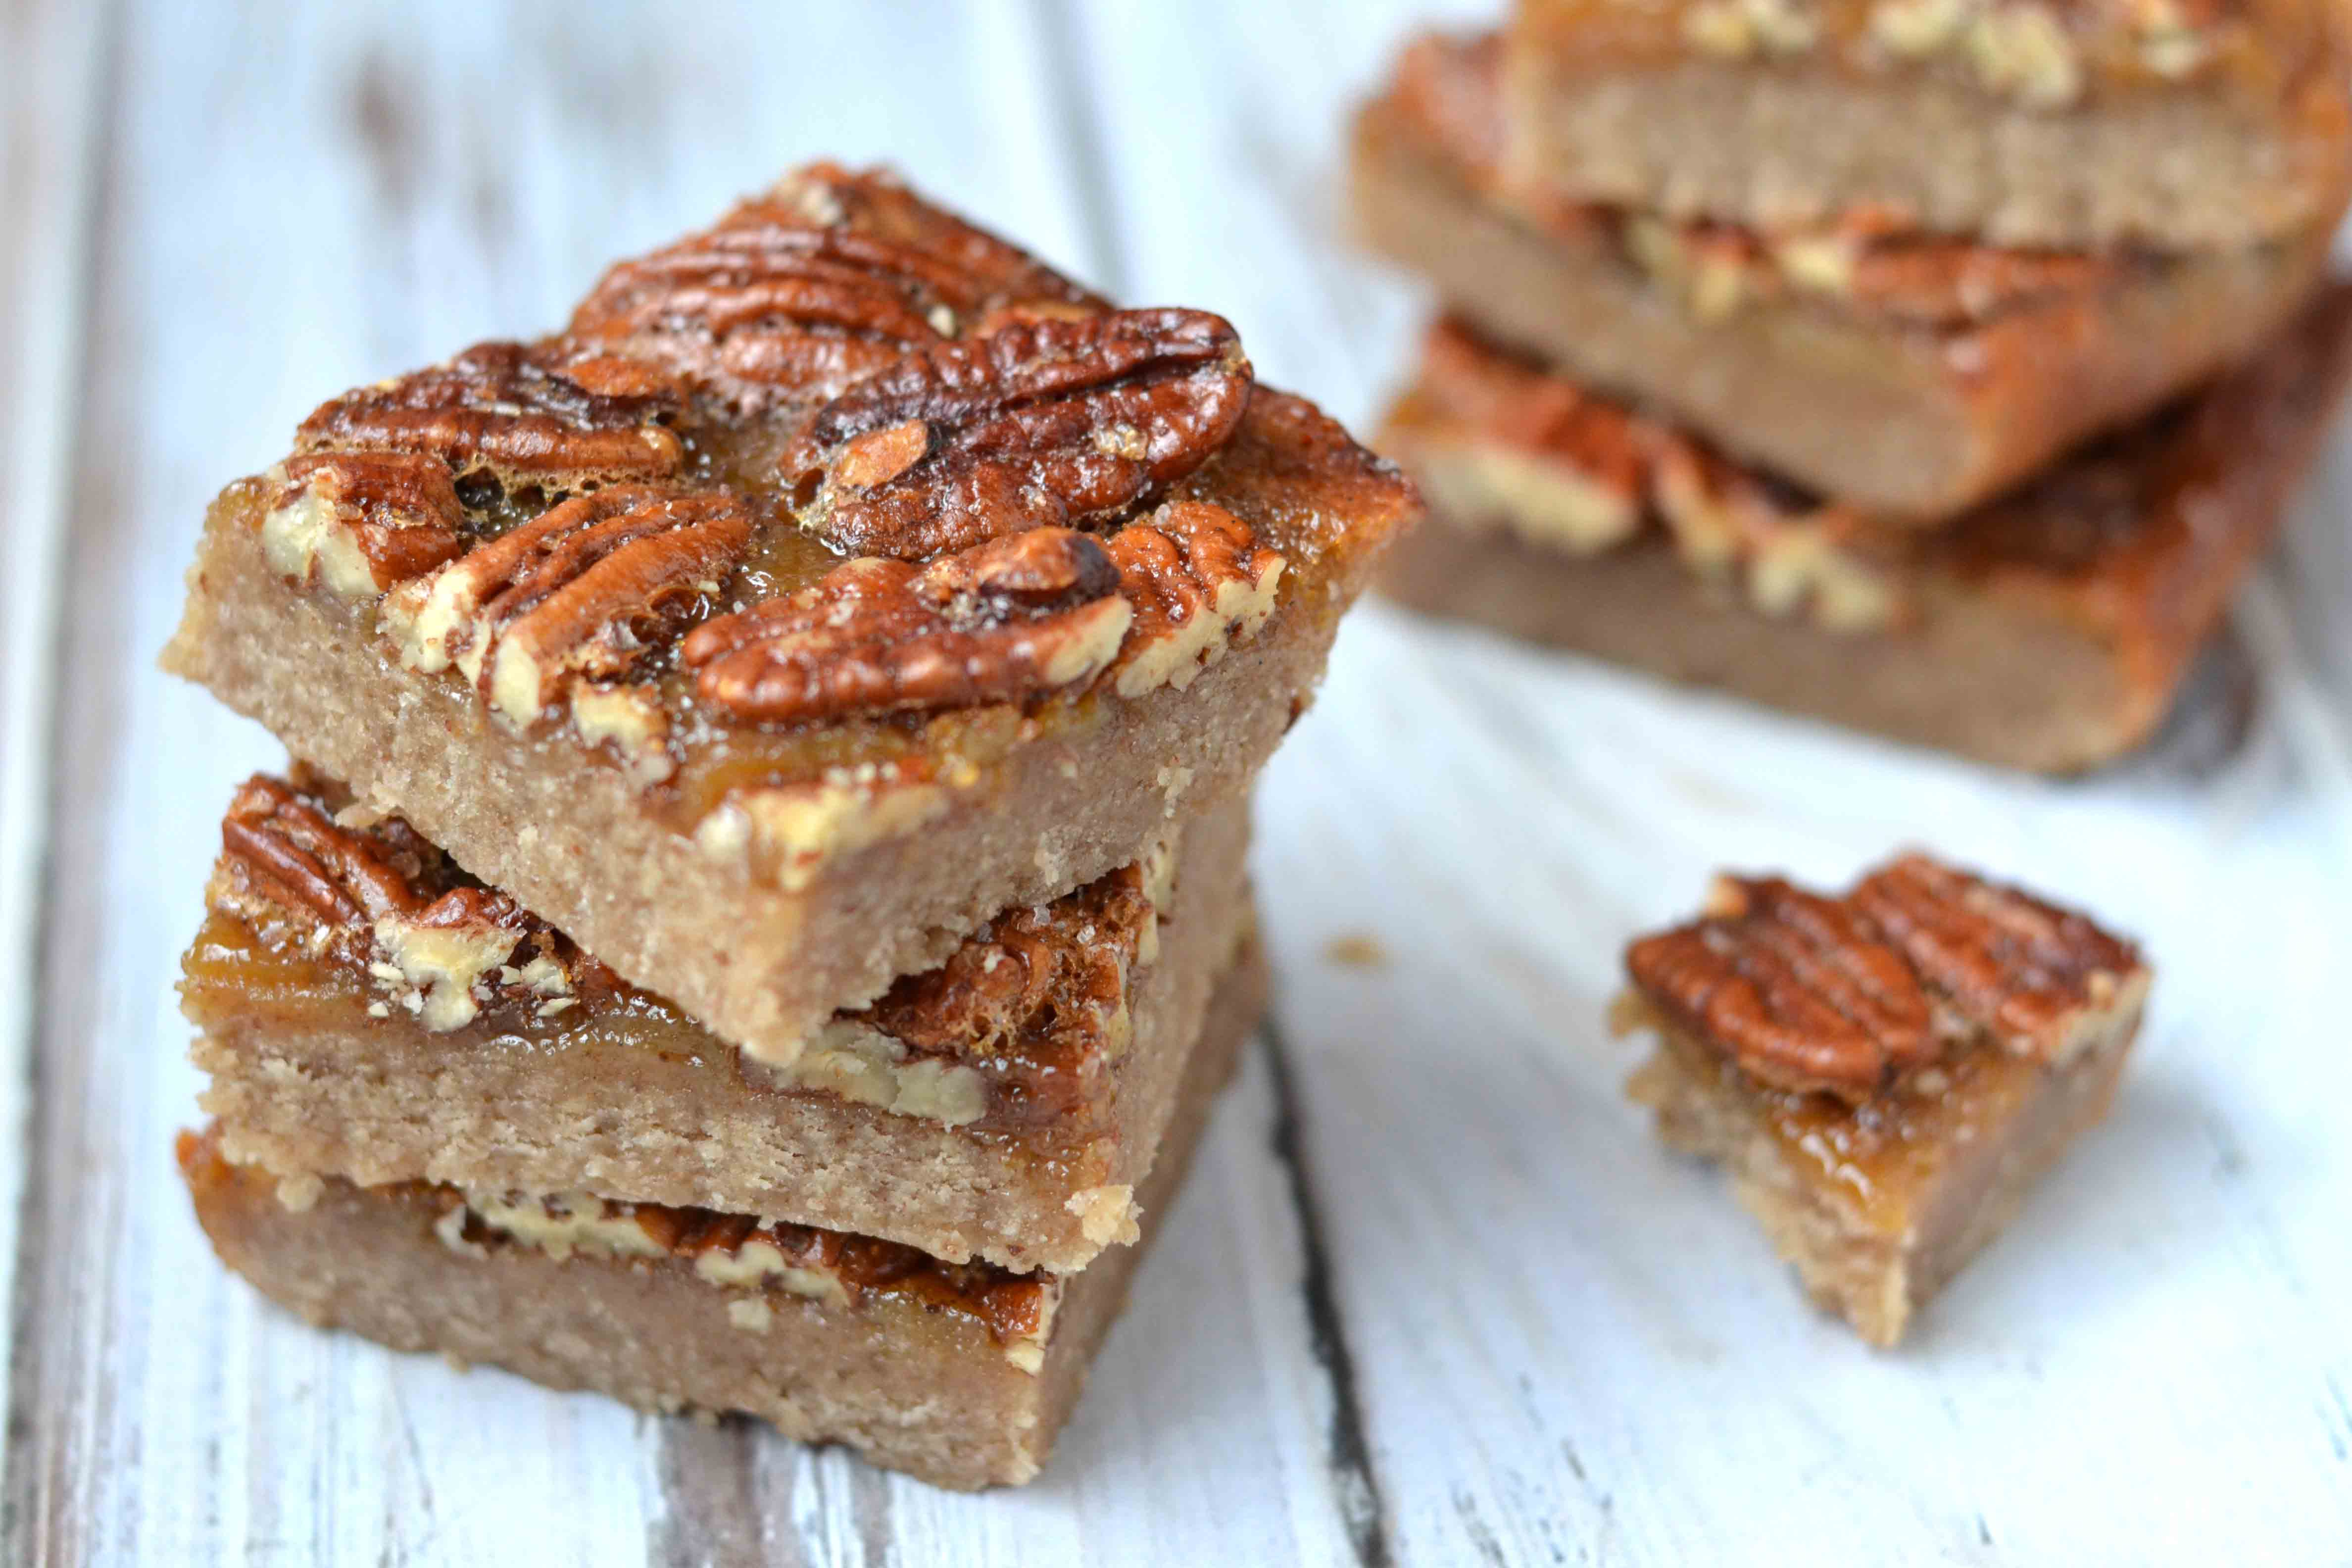 Salted maple pecan bars